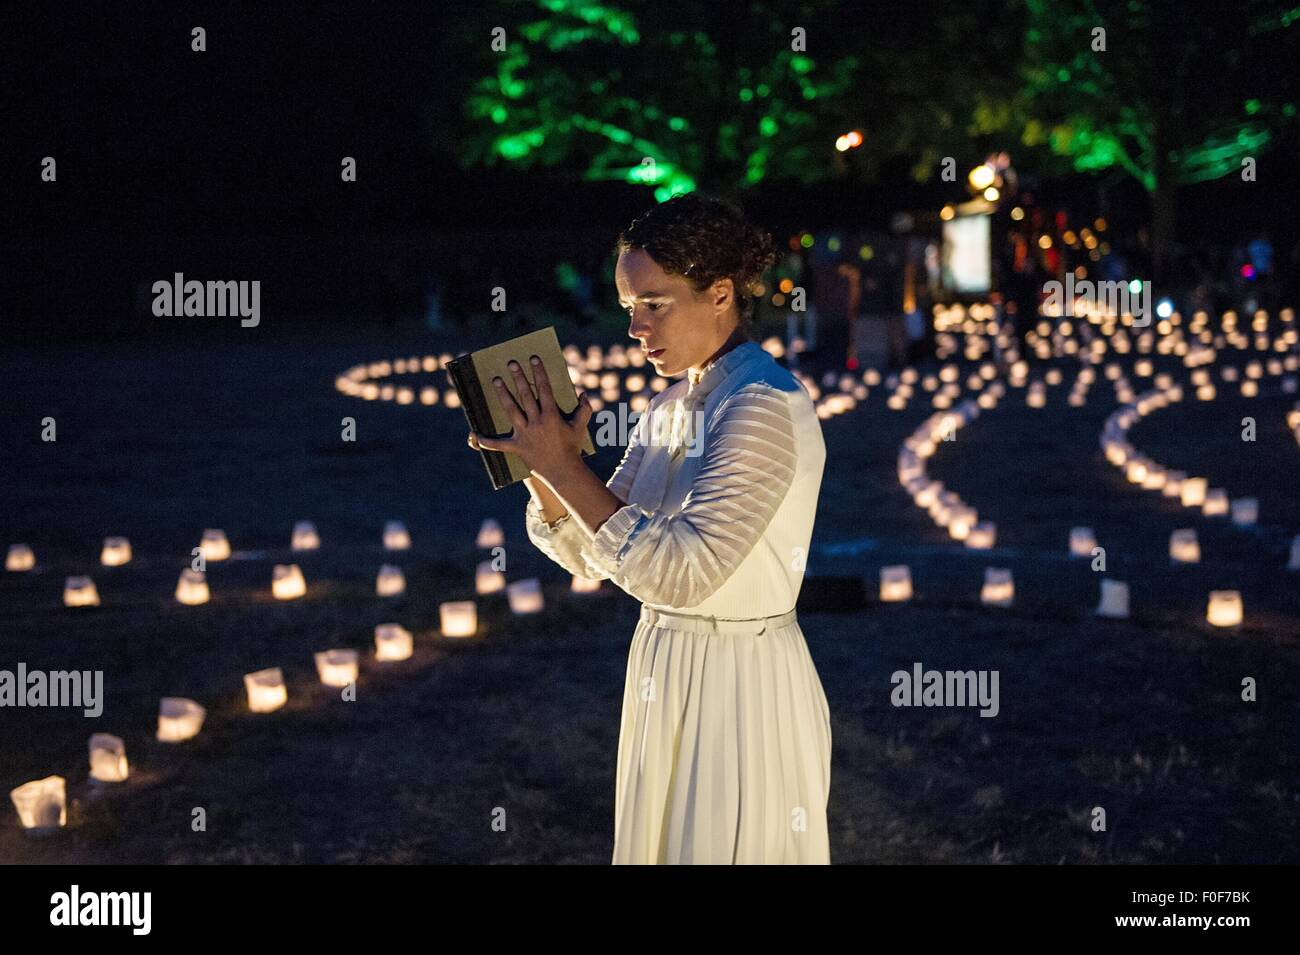 An actres stands in a labyrinth of lights at Tempelhofer Feld in Berlin, Germany, 13 August 2015. Here, Theater - Stock Image